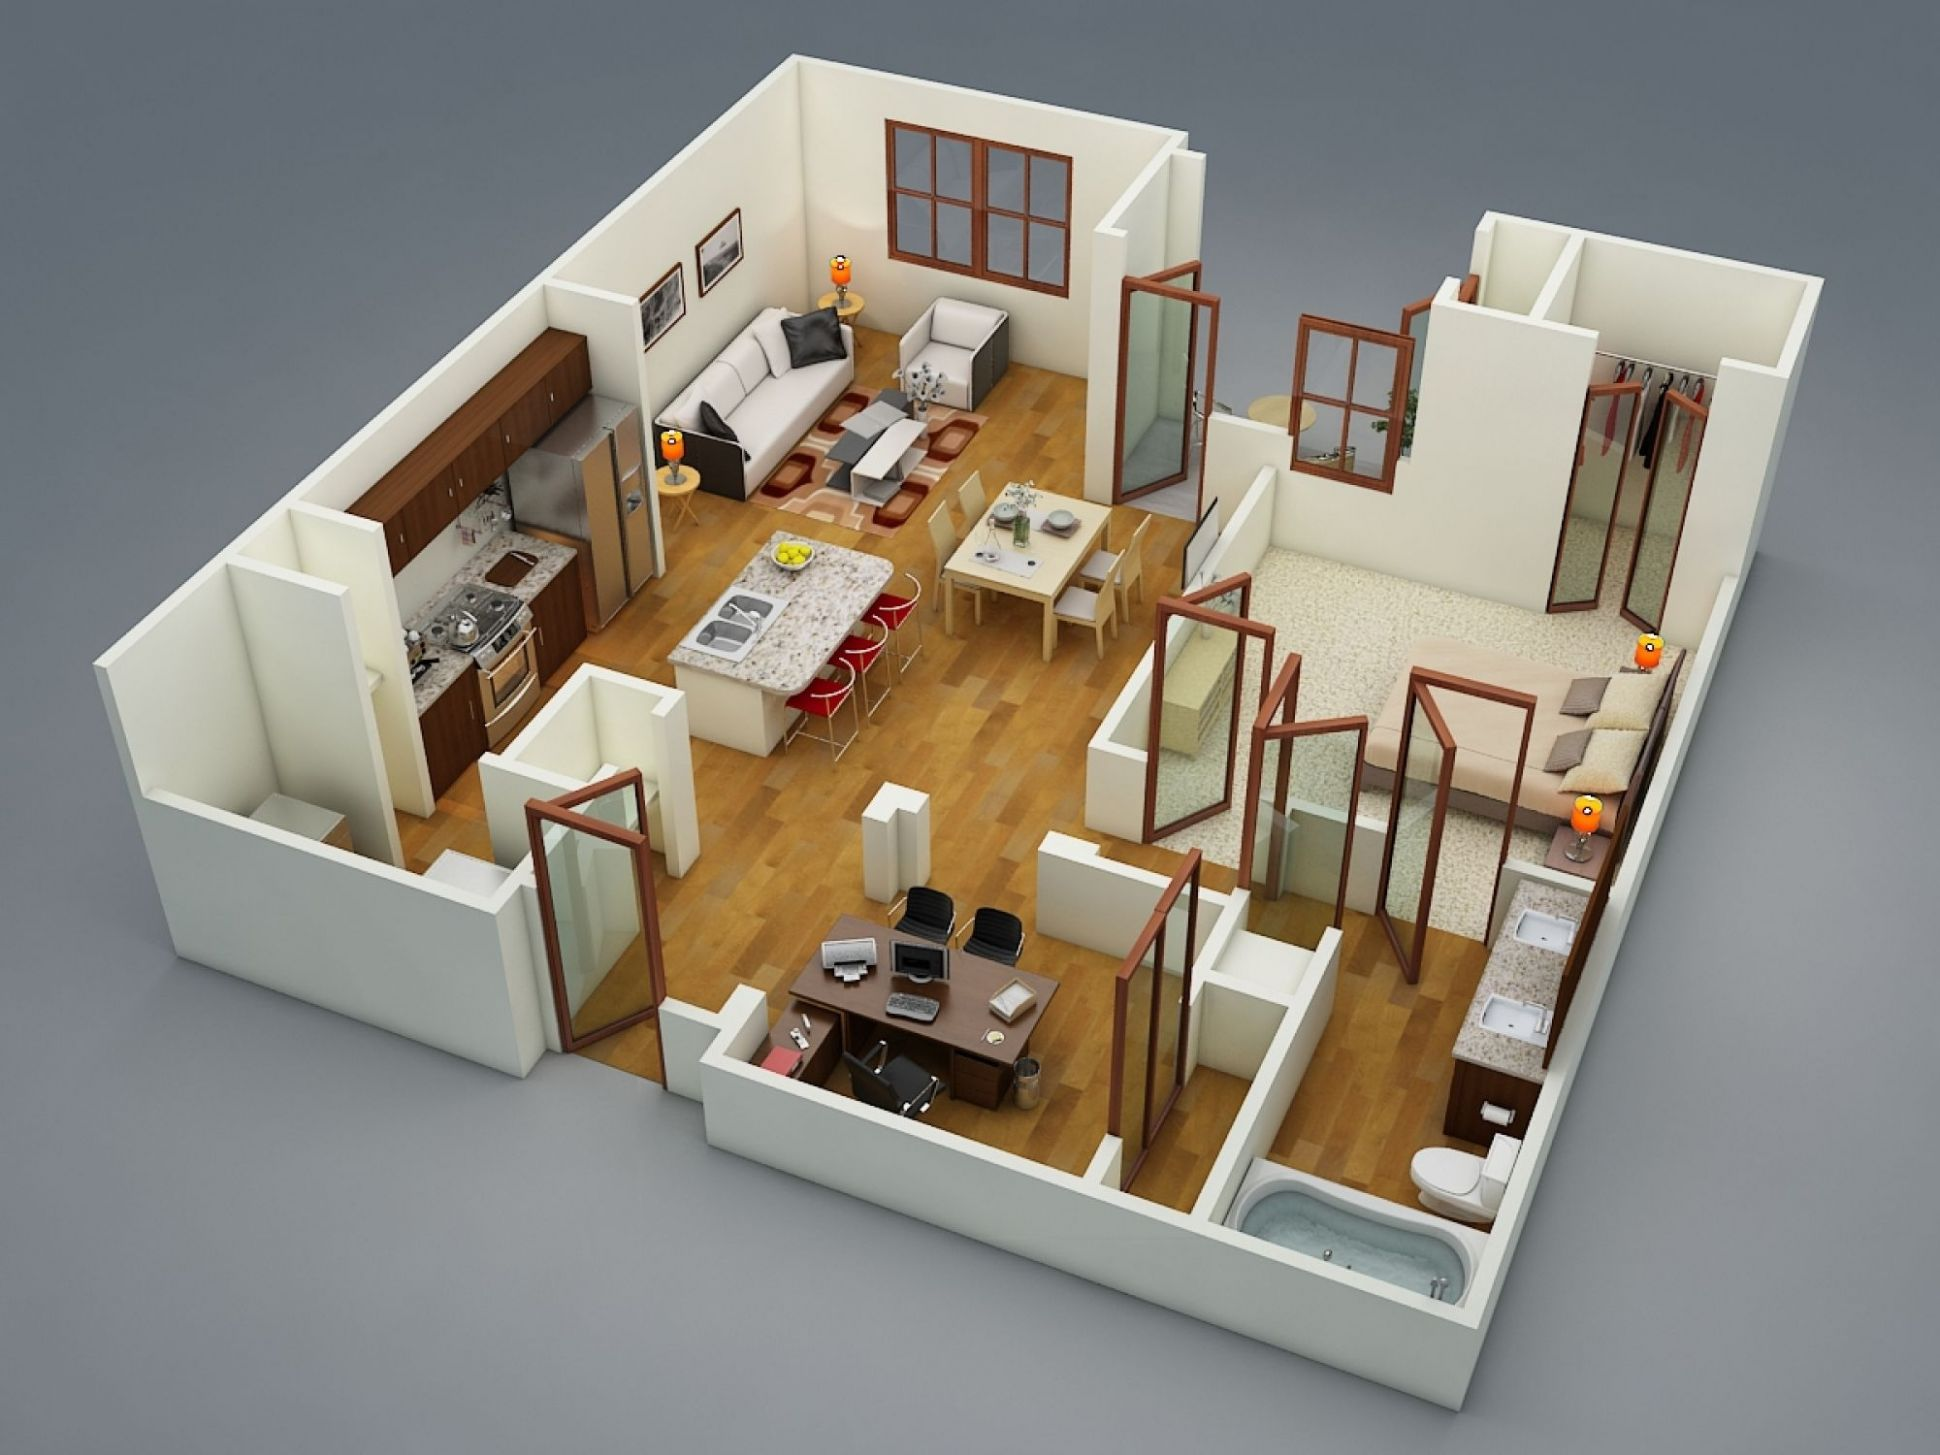 10 Bedroom Apartment/House Plans